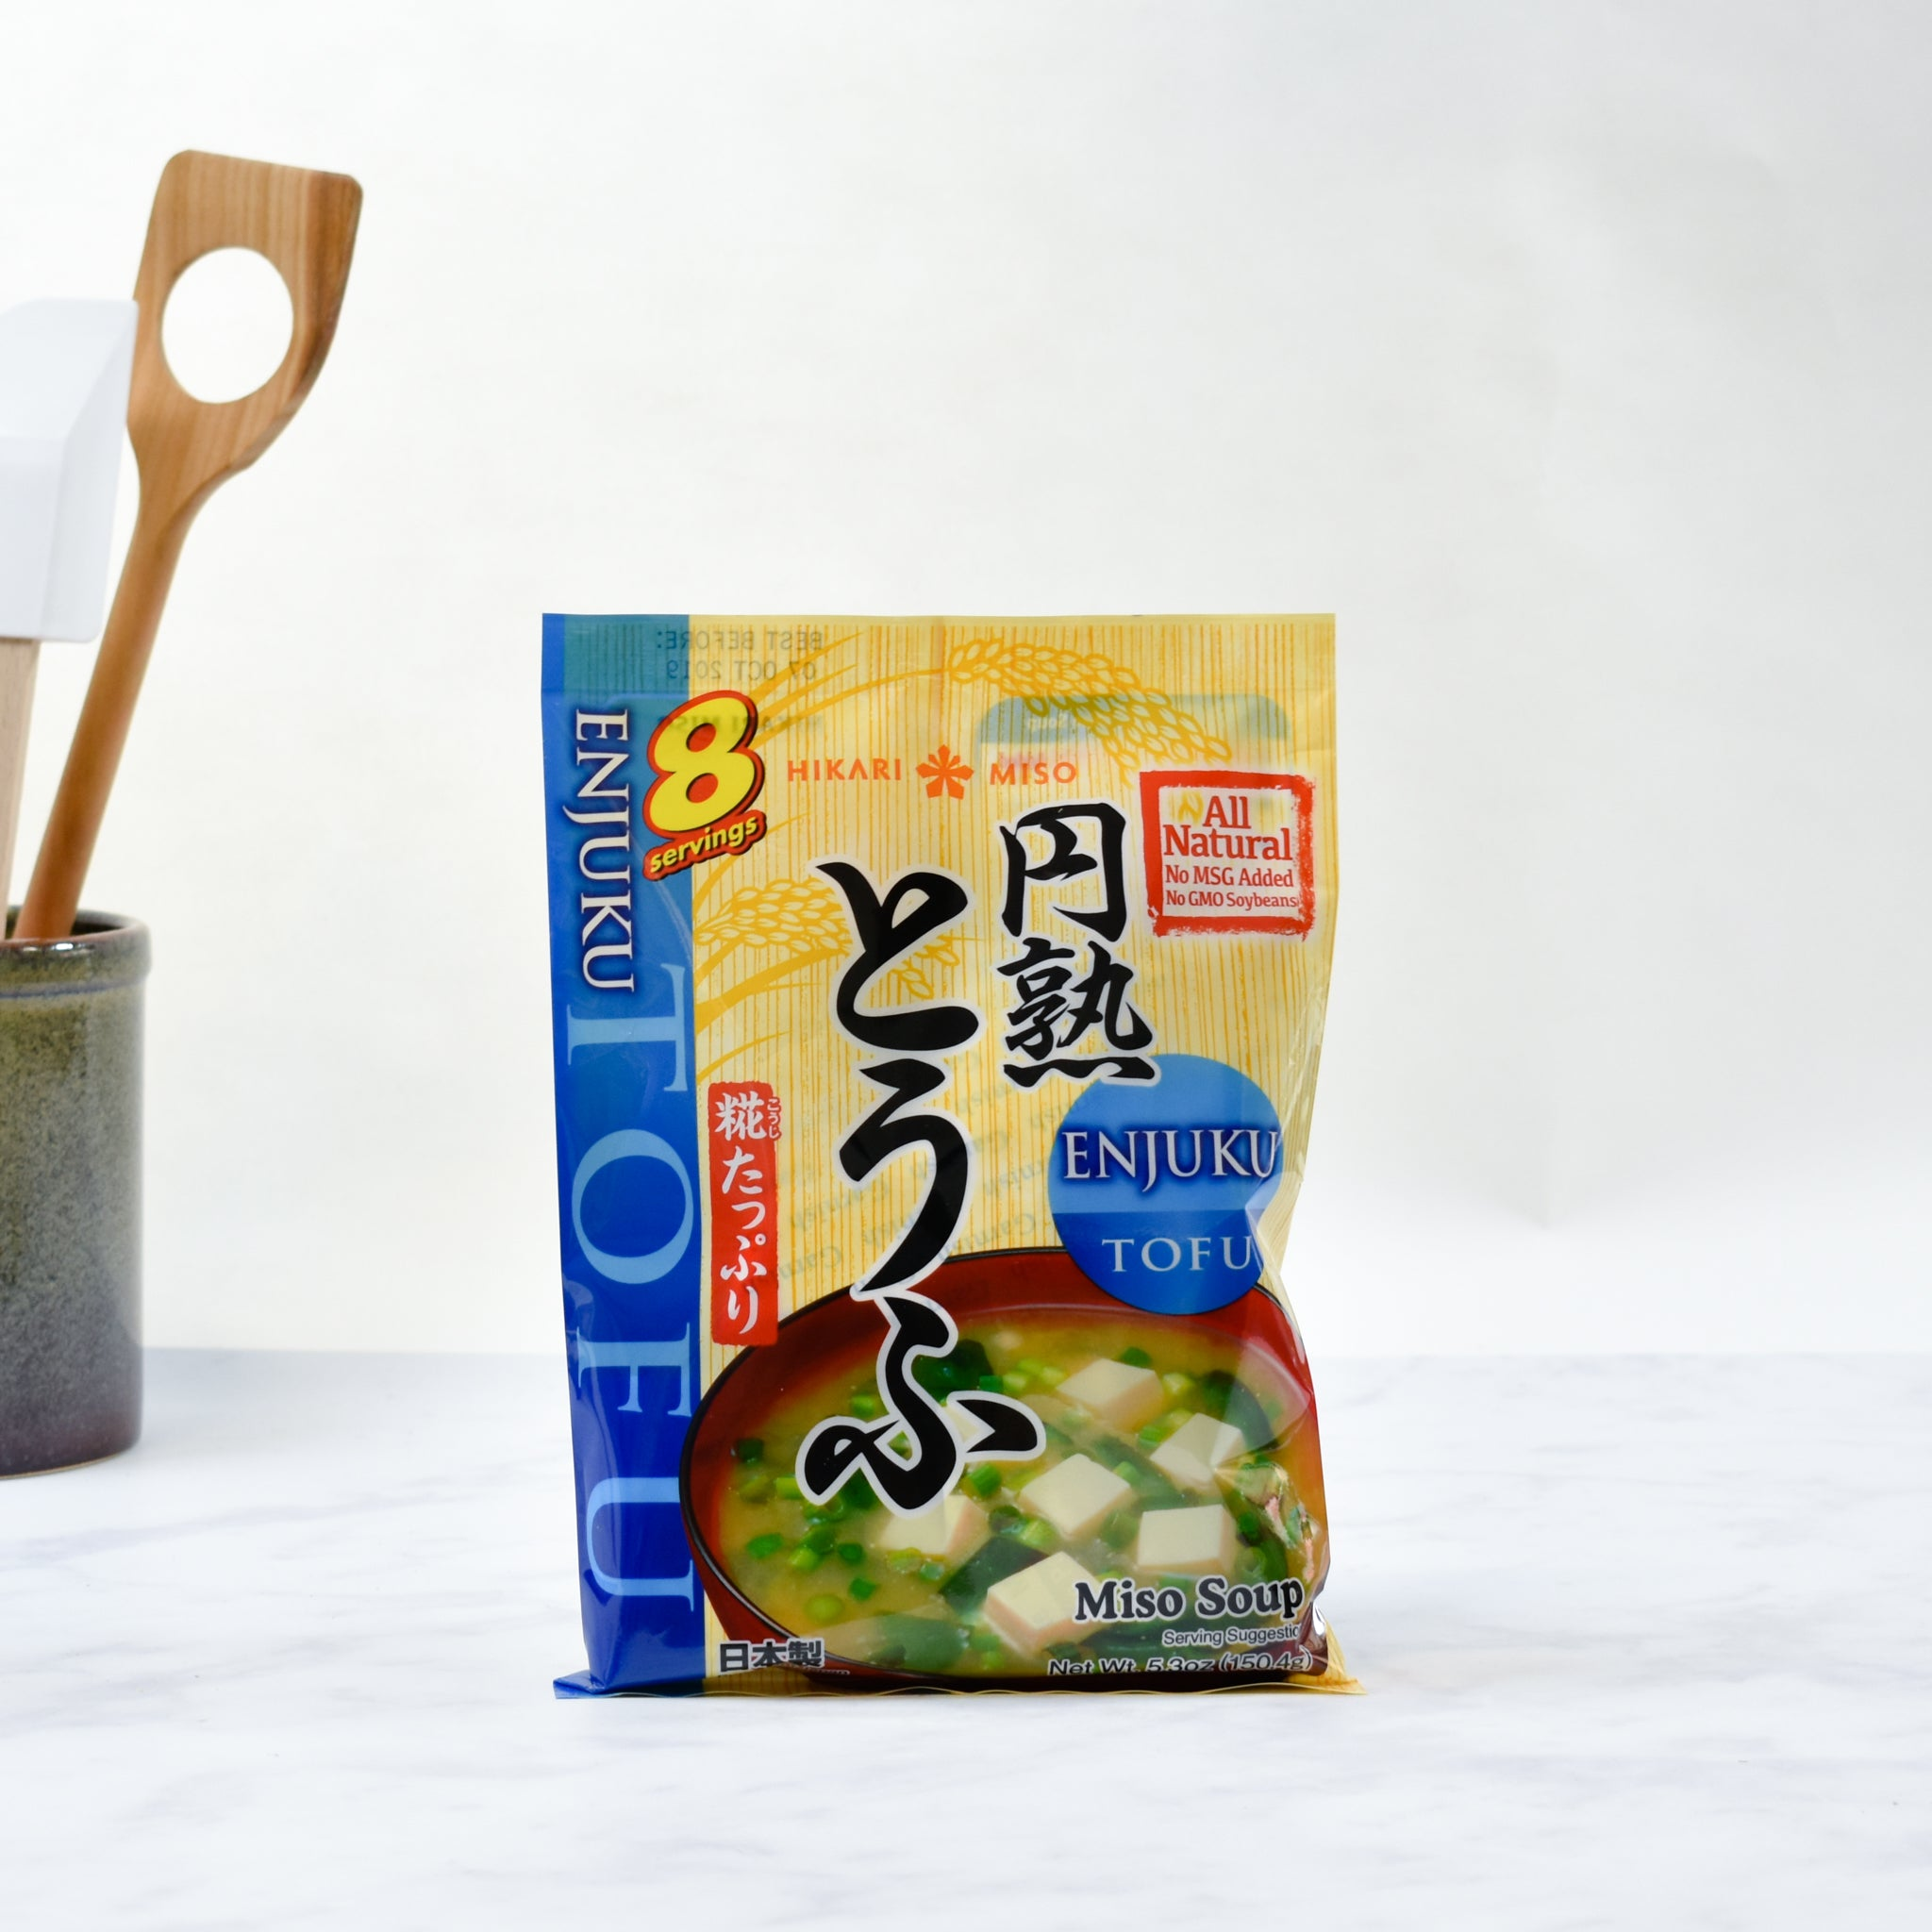 Instant Miso Soup With Tofu 8 x 22g servings